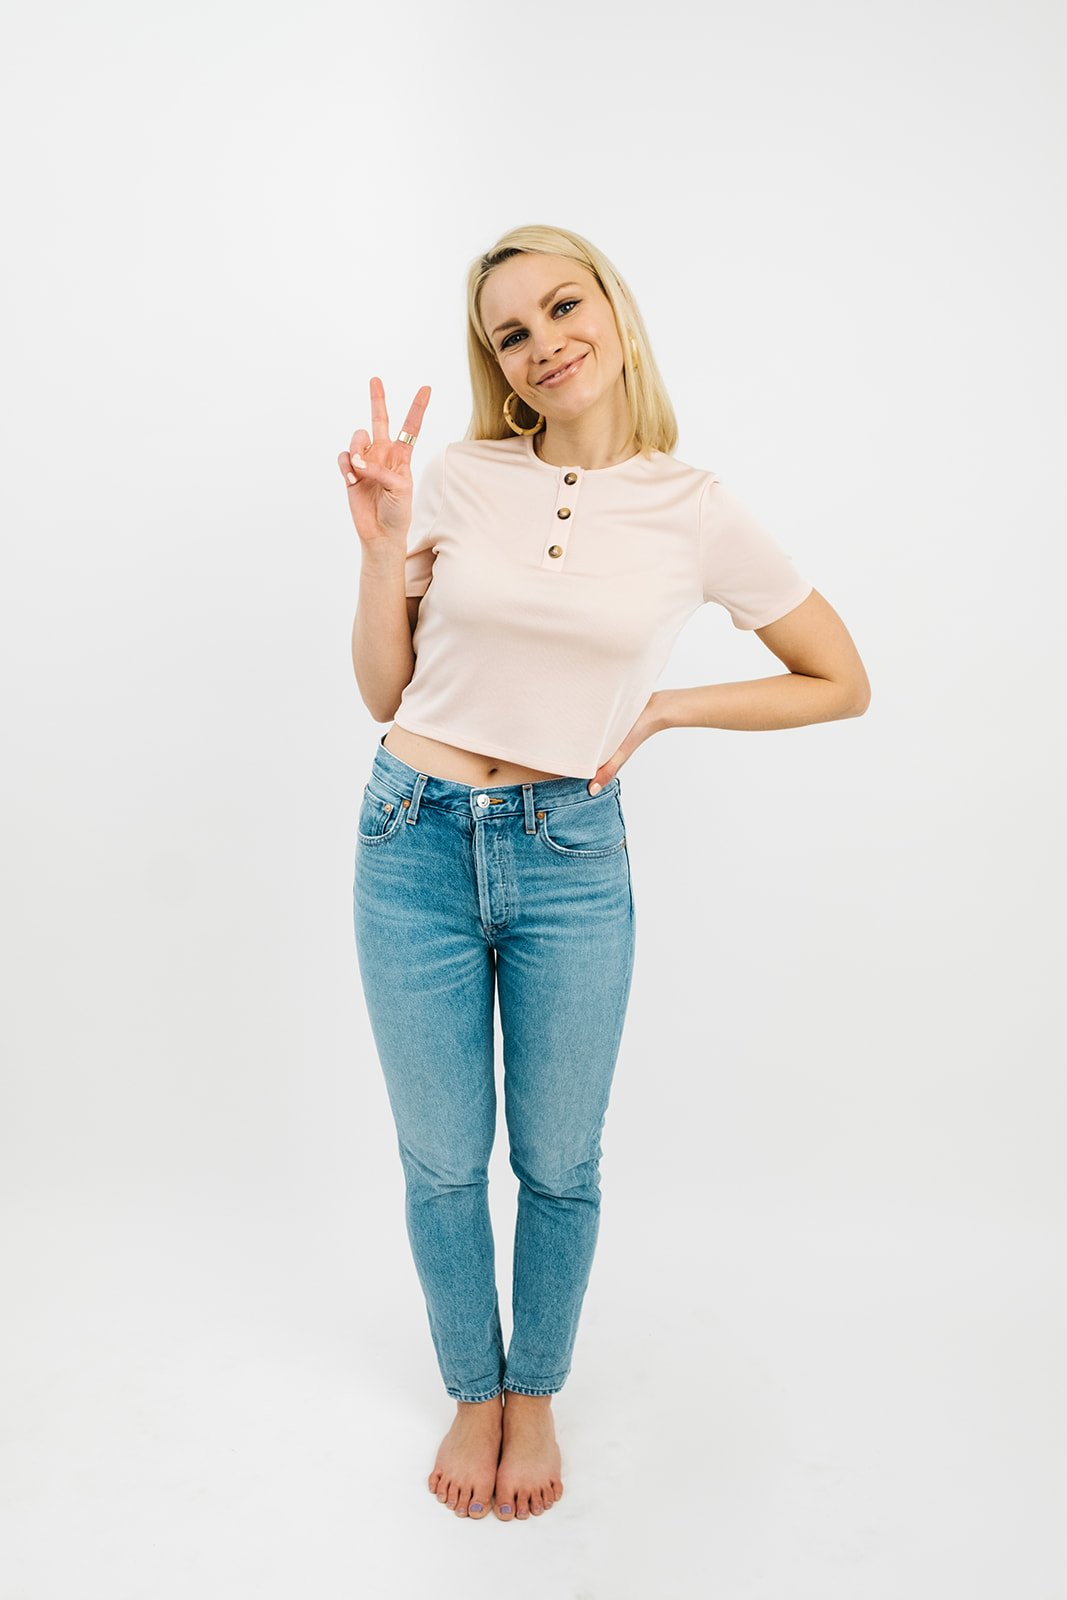 blonde woman in light washed jeans and a light pink t-shirt with buttons